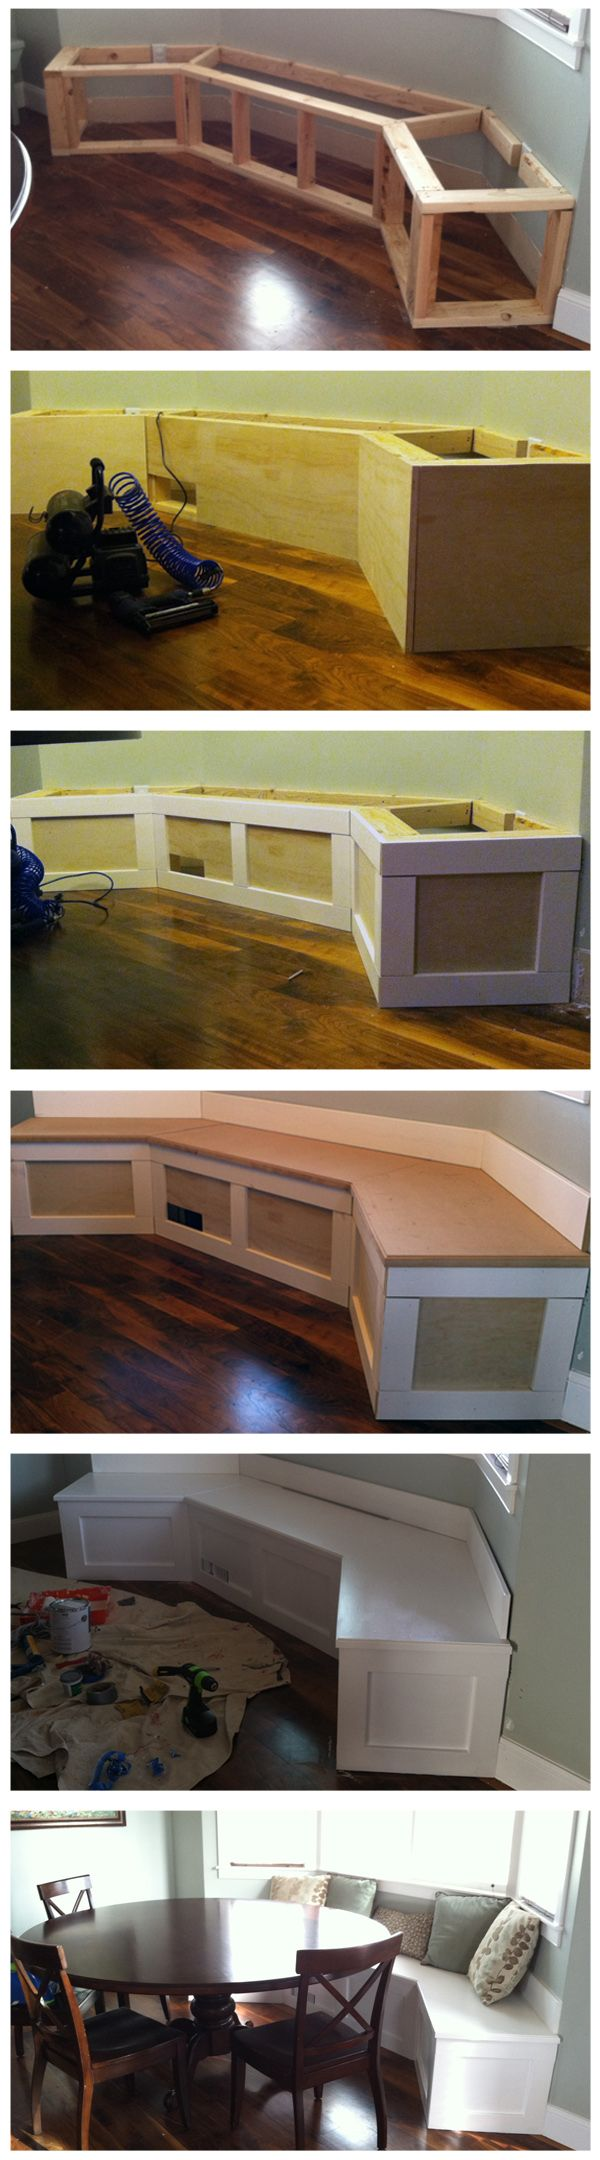 Built-In Banquette Tutorial - What a great idea - can be conformed to the shape of your room - Love it!